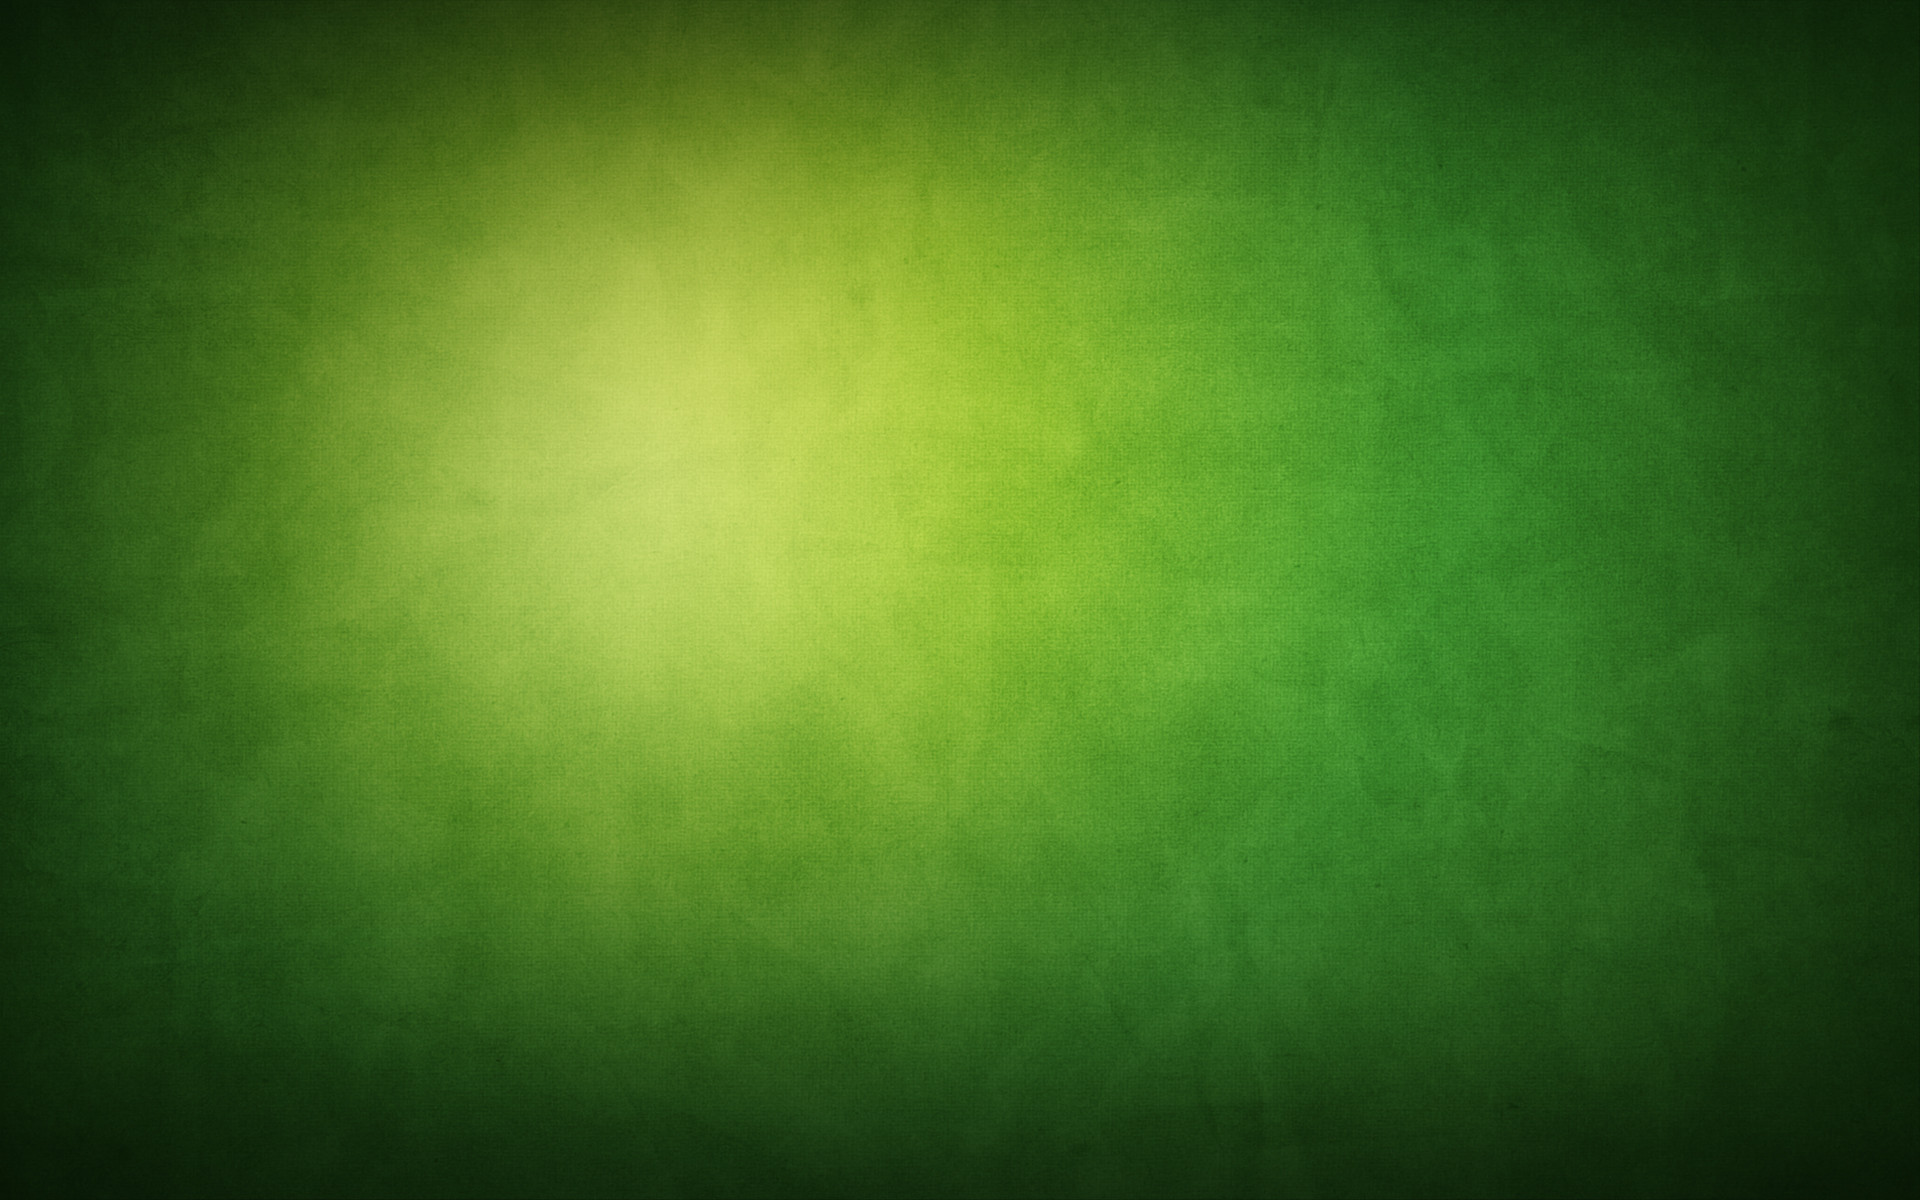 Pretty Green Backgrounds